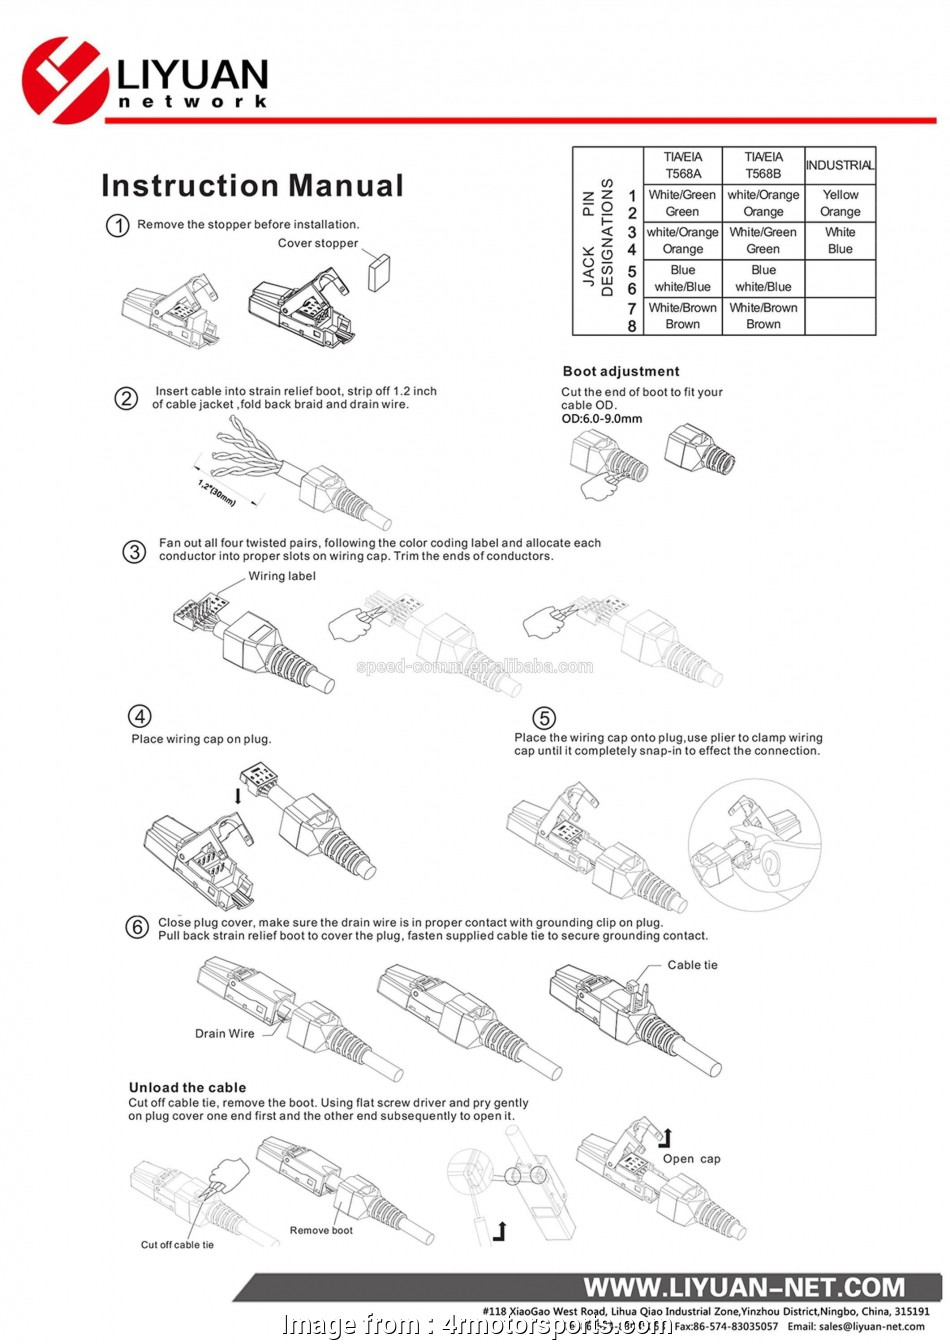 Rj11 To Rj45 Wiring Diagram from tonetastic.info